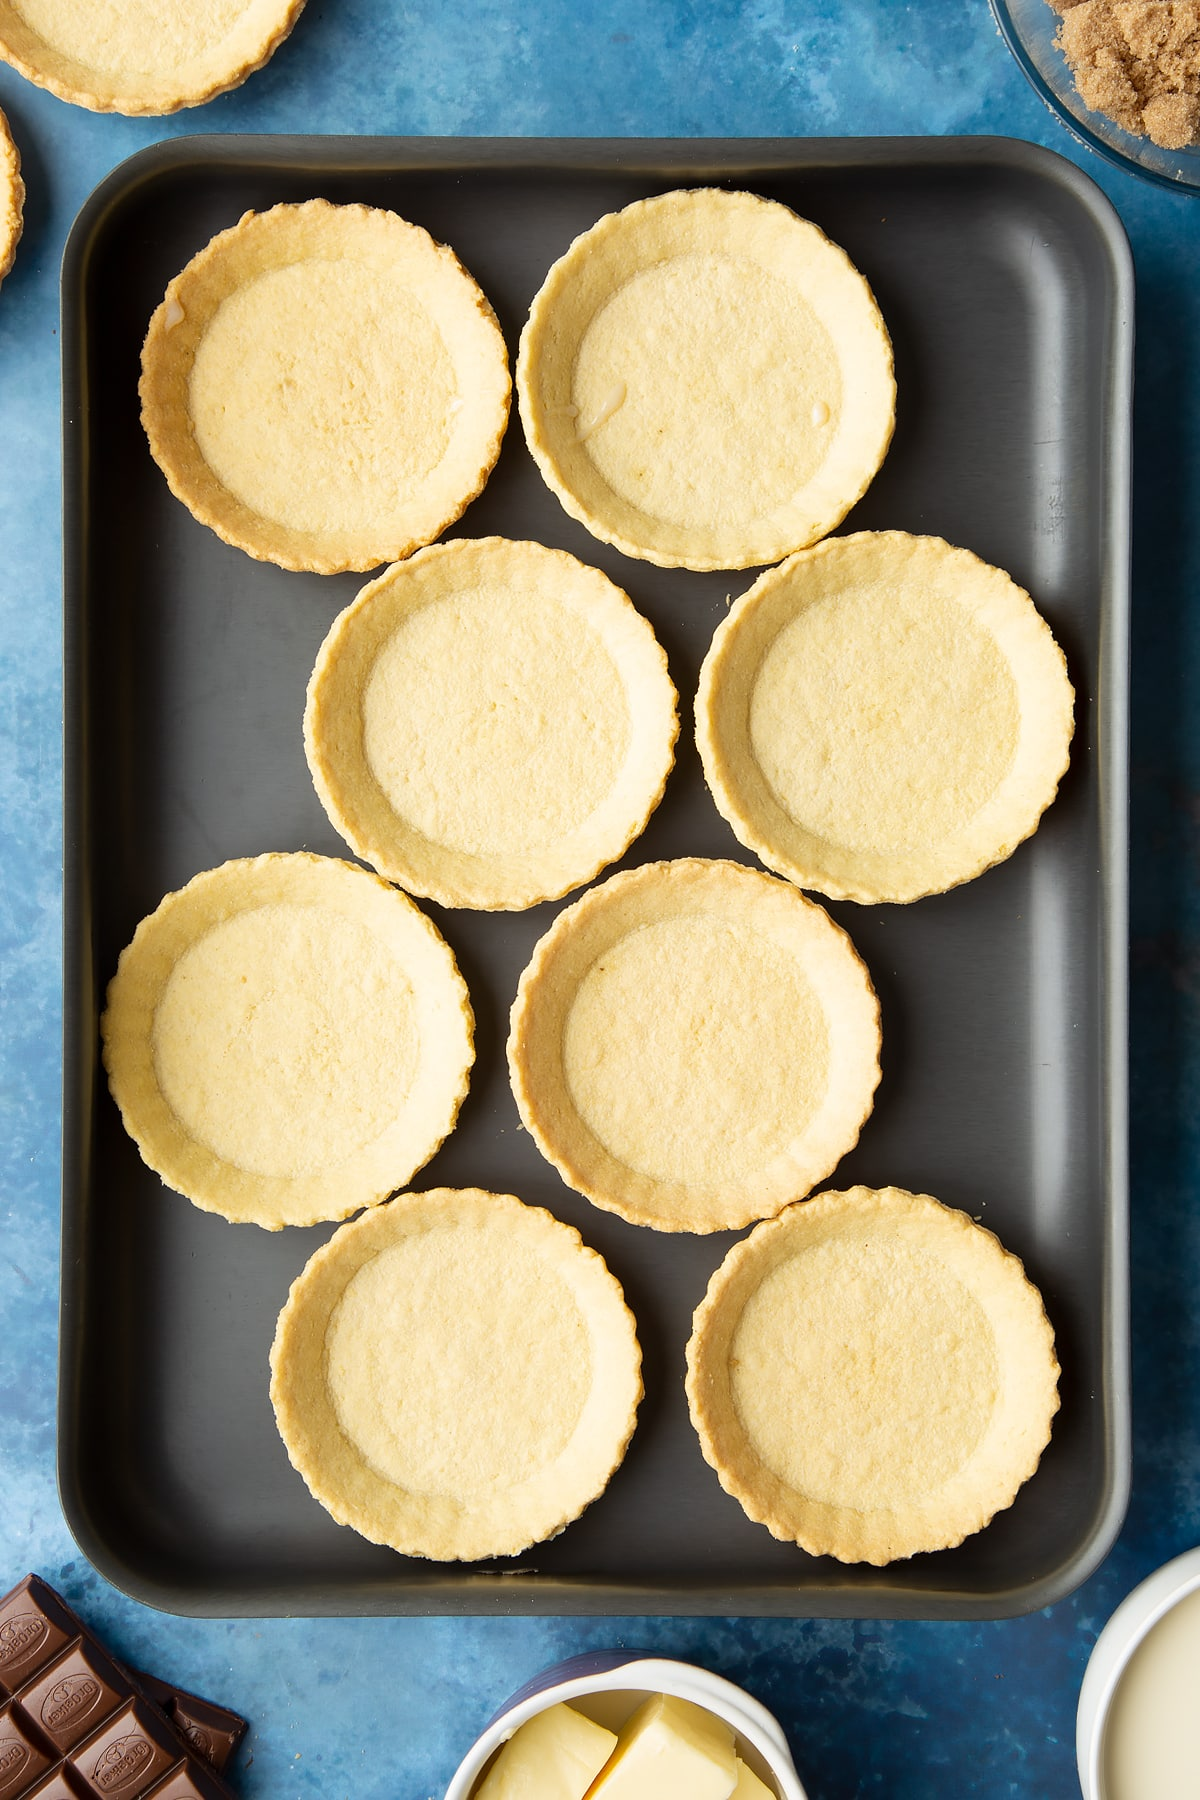 Small pastry cases on a large metal baking tray. Ingredients to make mini chocolate tarts surround the tray.